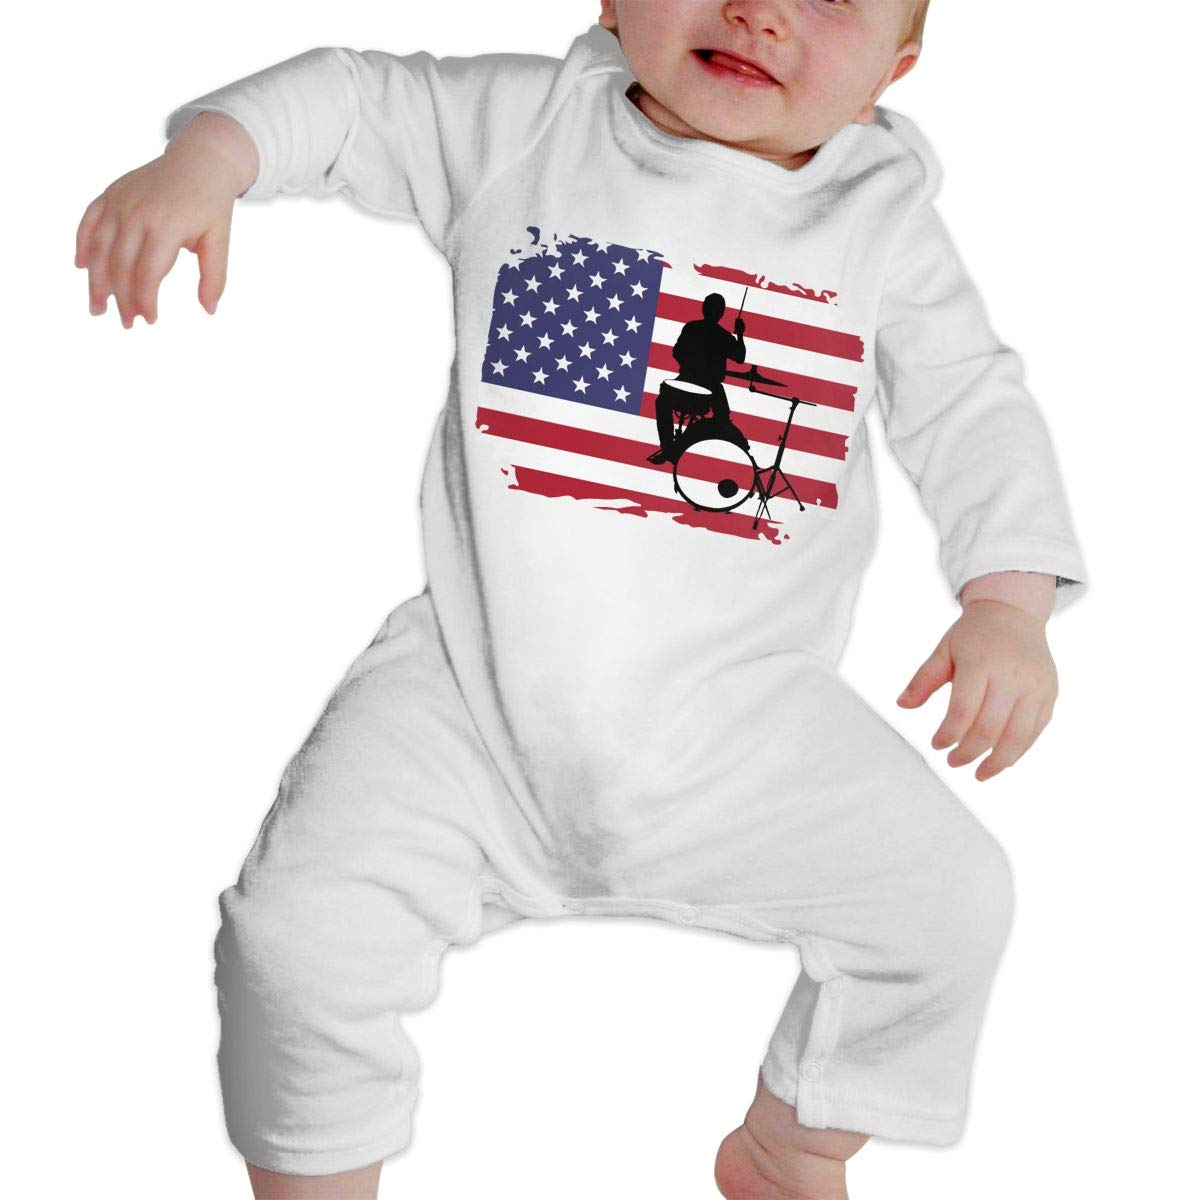 A1BY-5US Baby Infant Toddler Cotton Long Sleeve Drummer with American Flag-1 Climb Jumpsuit Funny Printed Romper Clothes